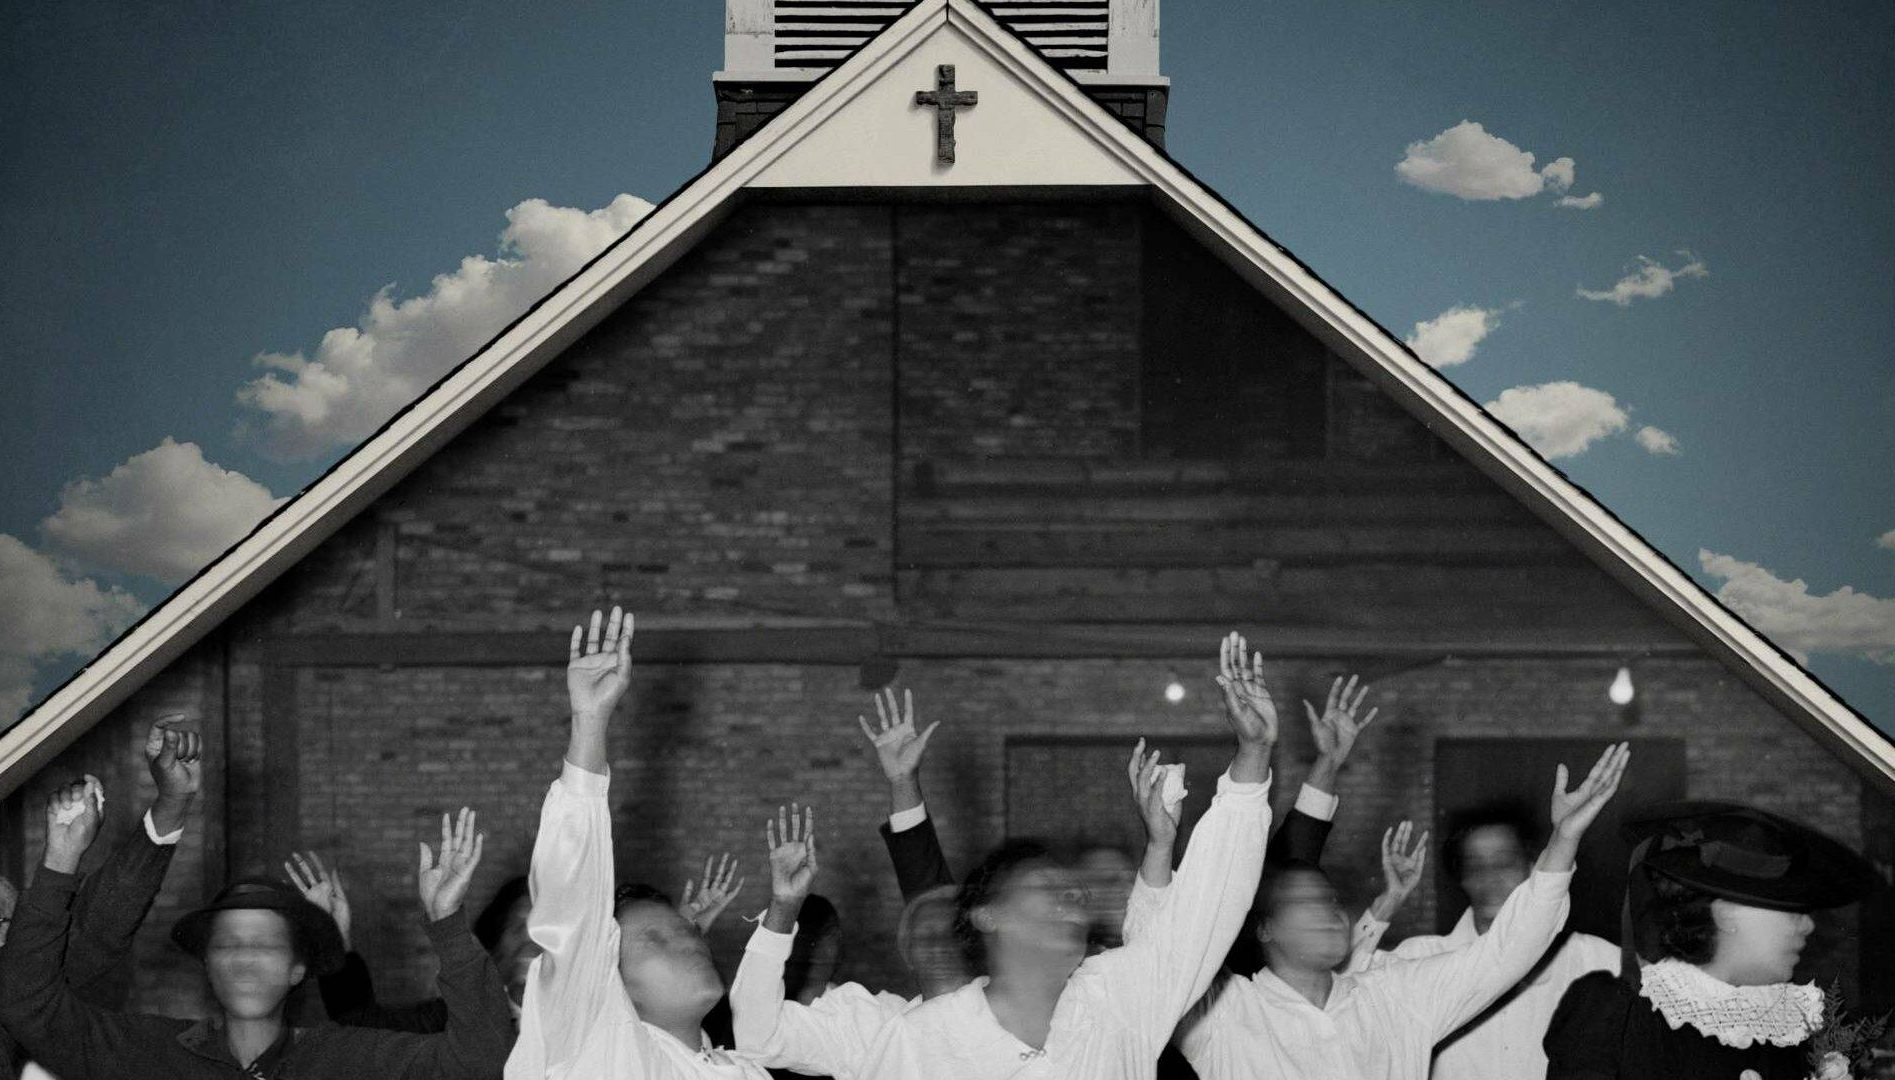 Photo of people with hands in the air and faces blurred by motion, standing in front of a church